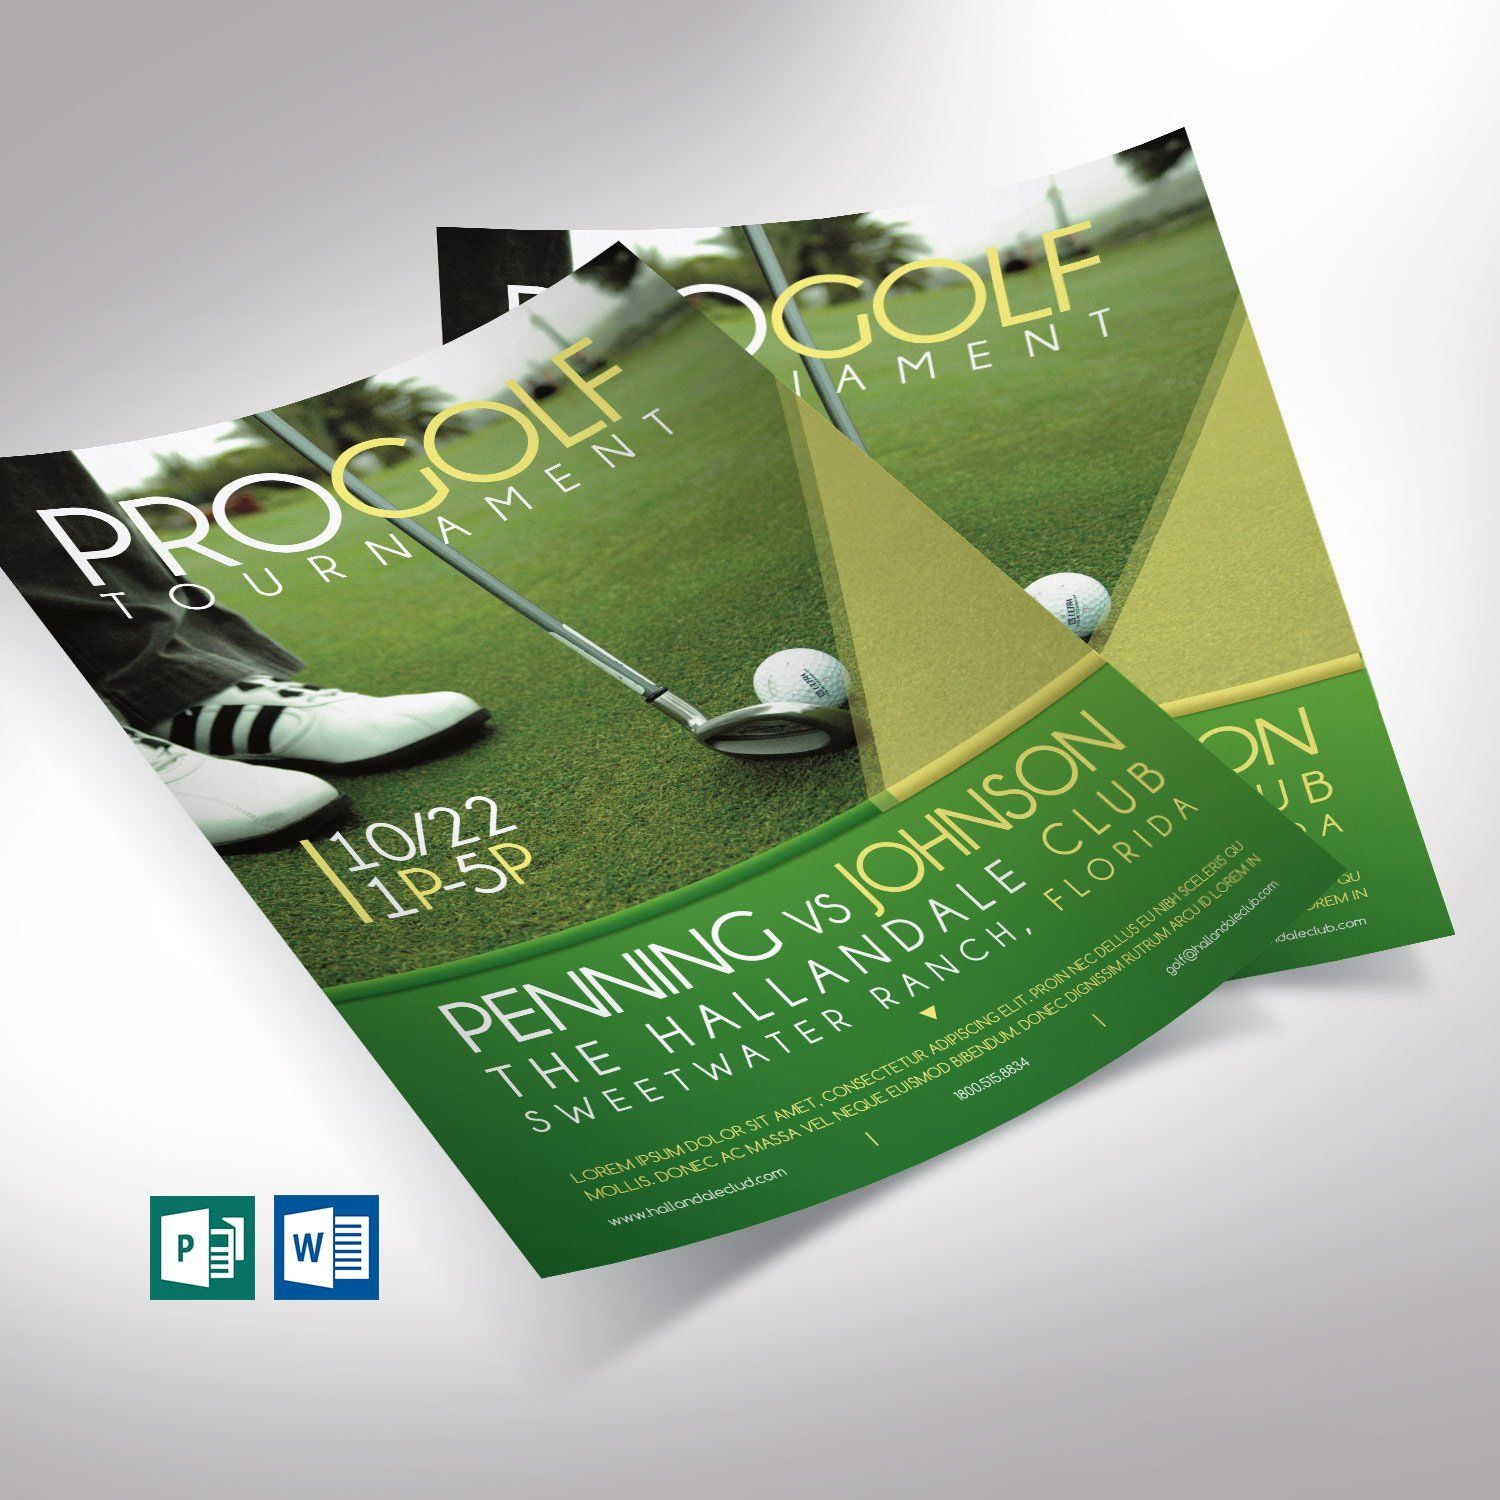 Golf Tournament Flyer Word Publisher Template Editable Etsy Publisher Templates Golf Tournament Sports Tournaments Golf tournament flyer template publisher